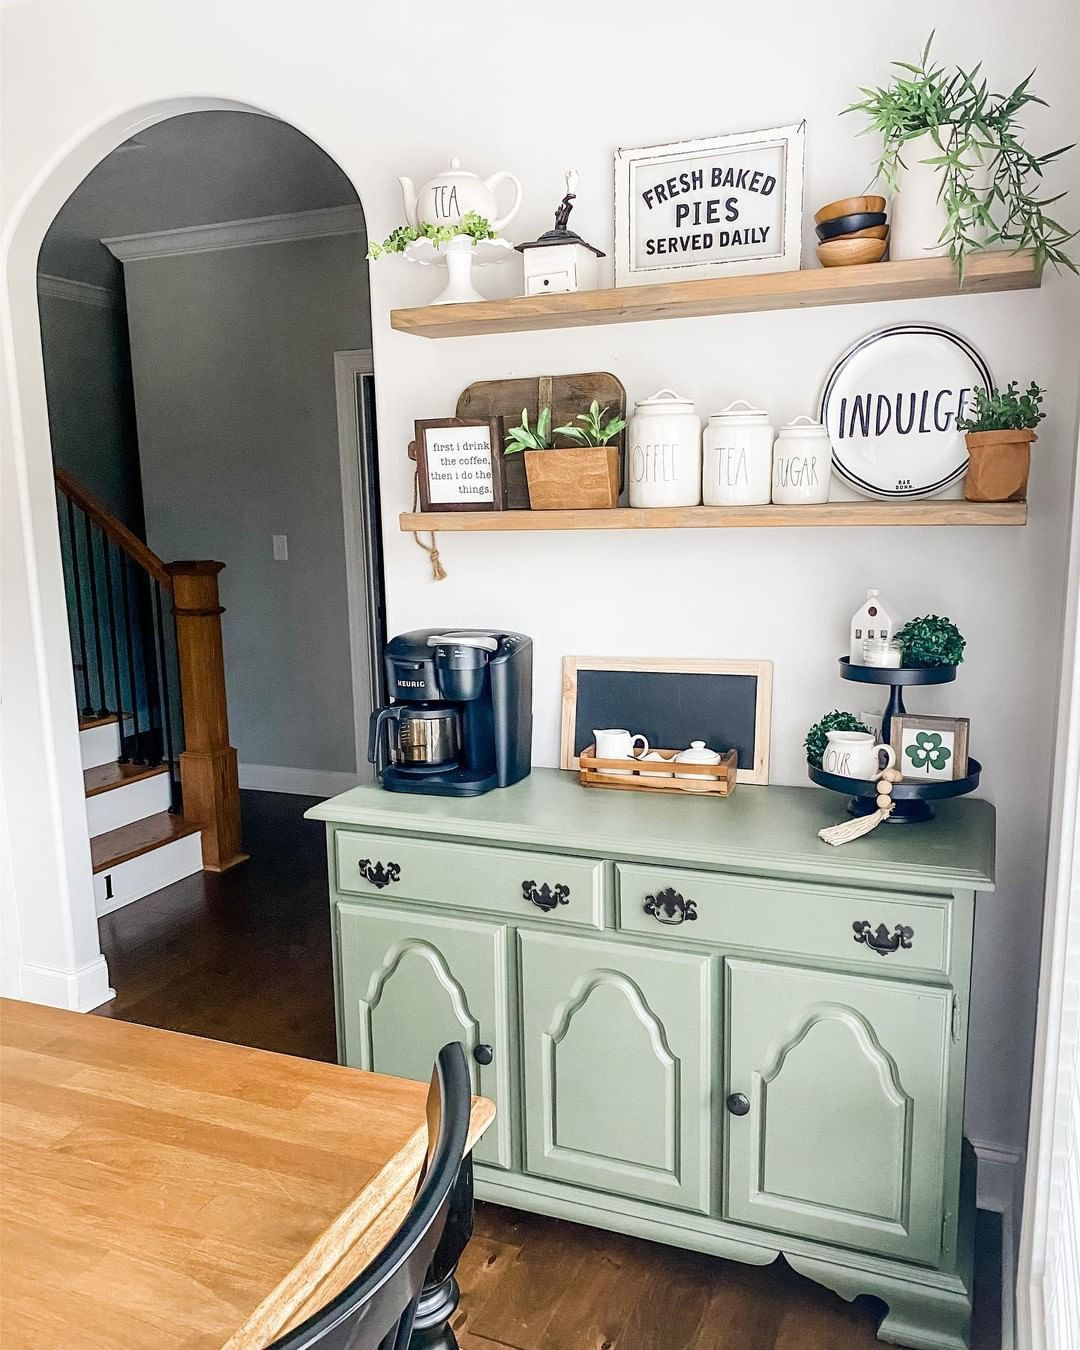 Home Coffee Bar Design Ideas: 50 DIY Coffee Bar Ideas To Try At Home In 2020